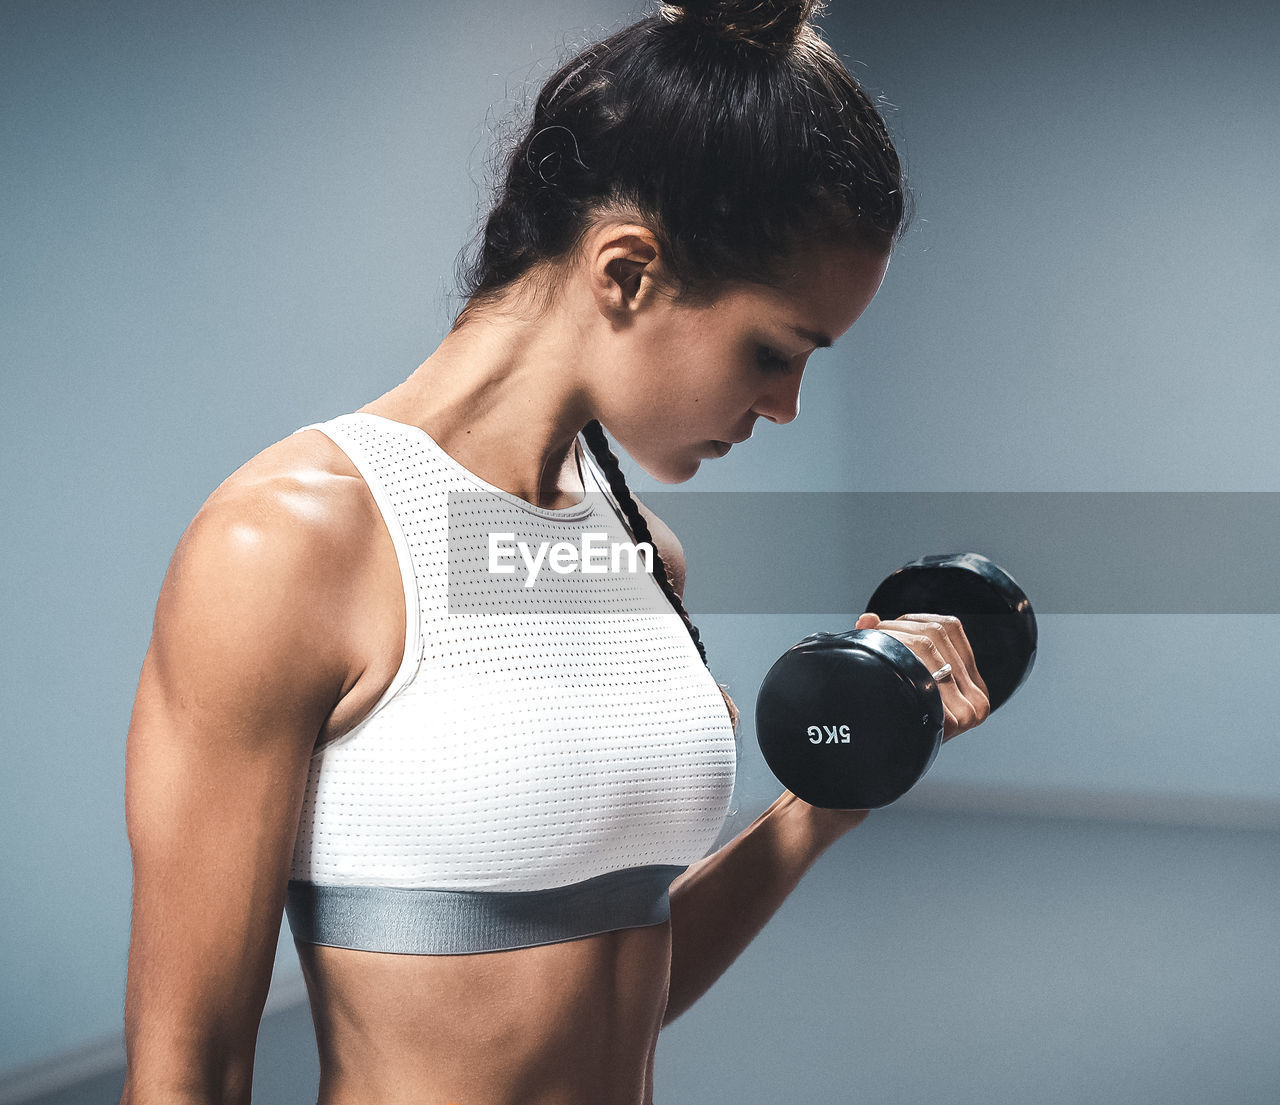 one person, lifestyles, indoors, sports training, healthy lifestyle, exercising, strength, sport, young adult, sports clothing, standing, dumbbell, holding, young women, weights, front view, adult, weight, weight training, body conscious